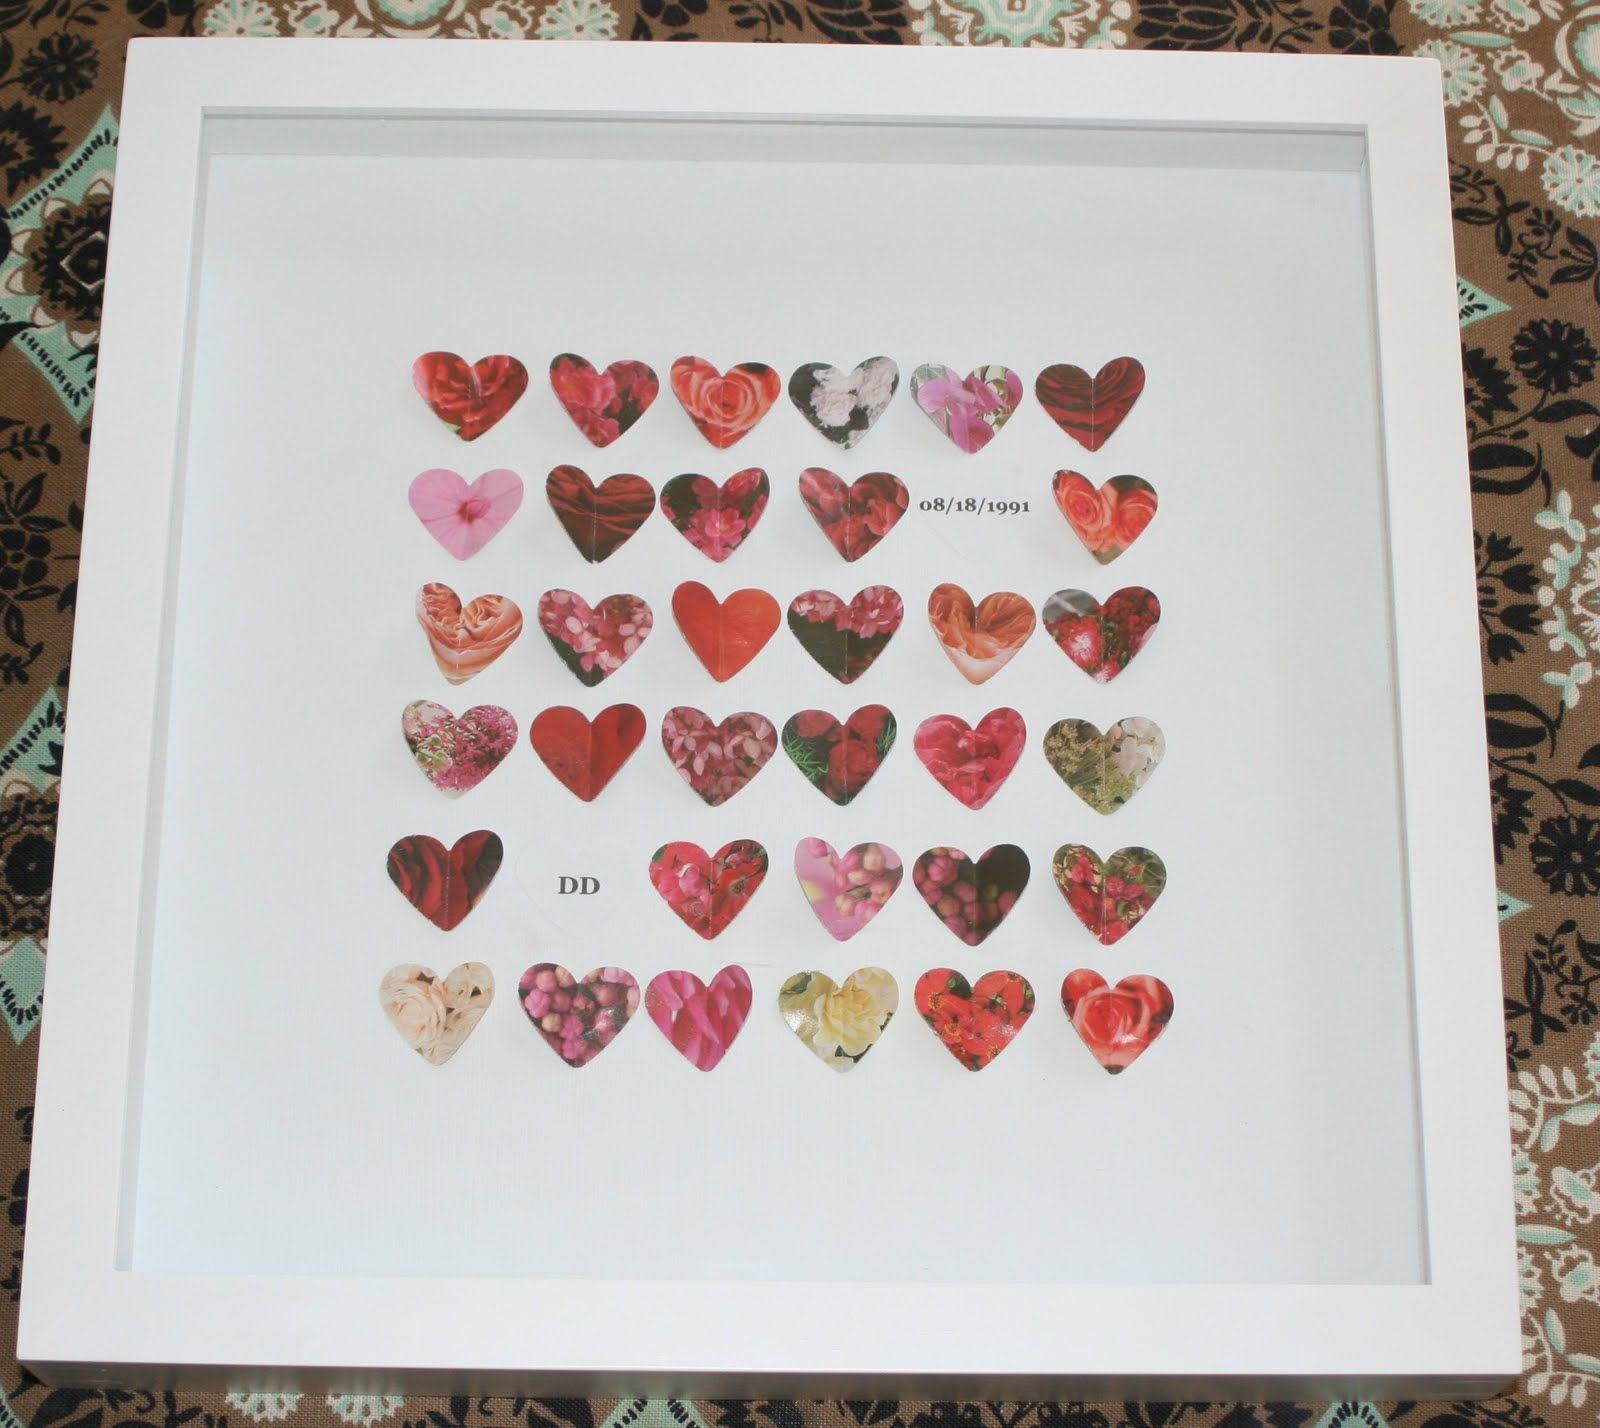 Handmade Wedding Gift Ideas: Homemade Anniversary Or Wedding Gift Frame With Hearts